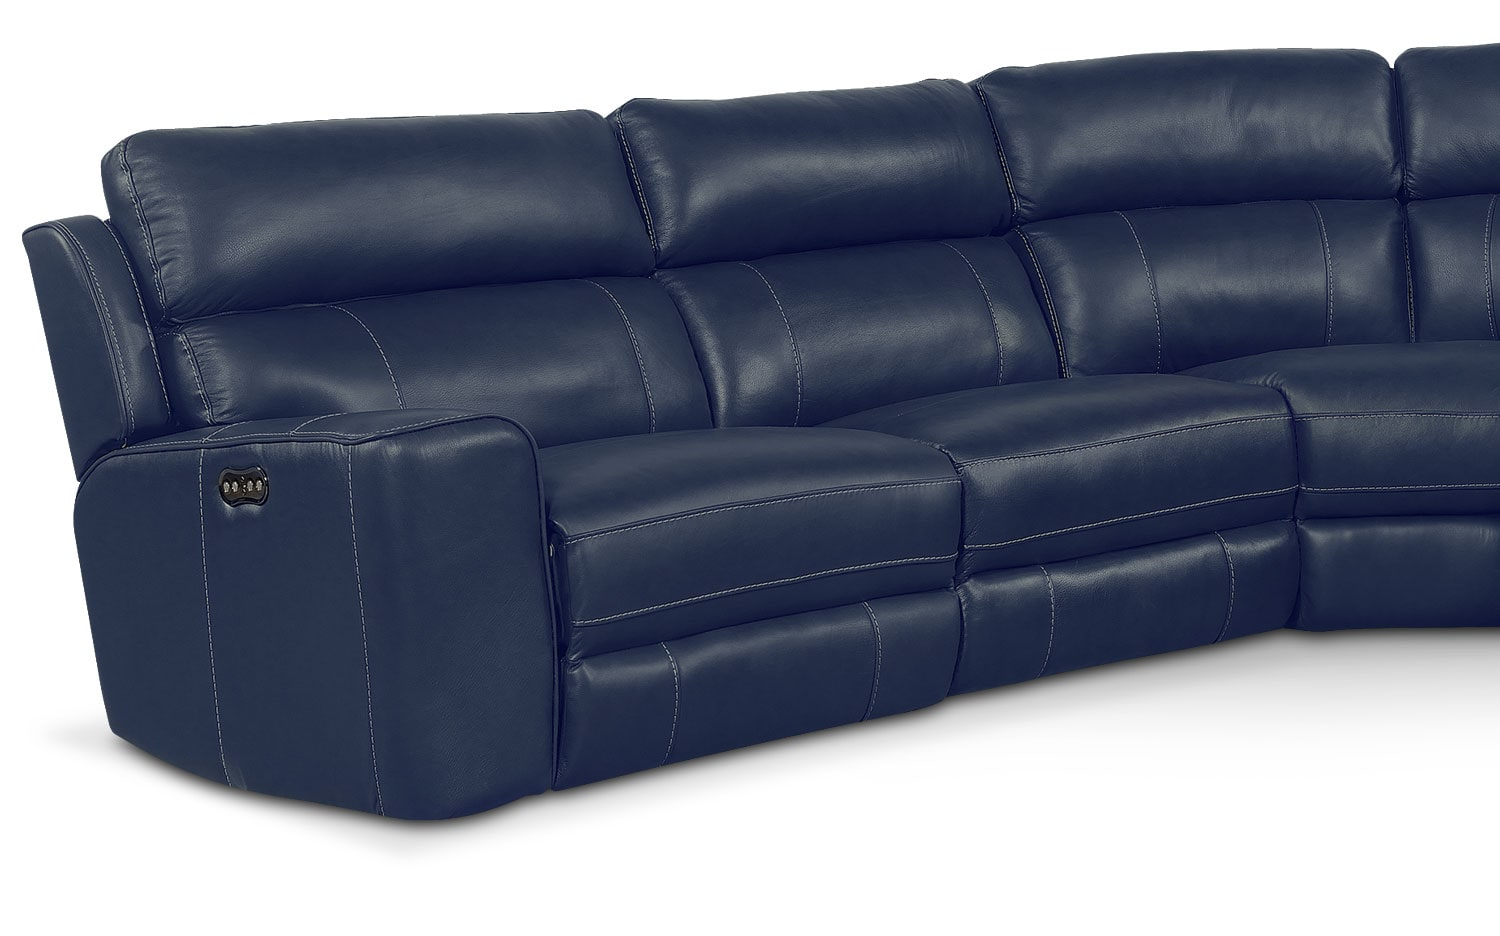 Newport 5 Piece Power Reclining Sectional With 2 Reclining Seats Blue American Signature